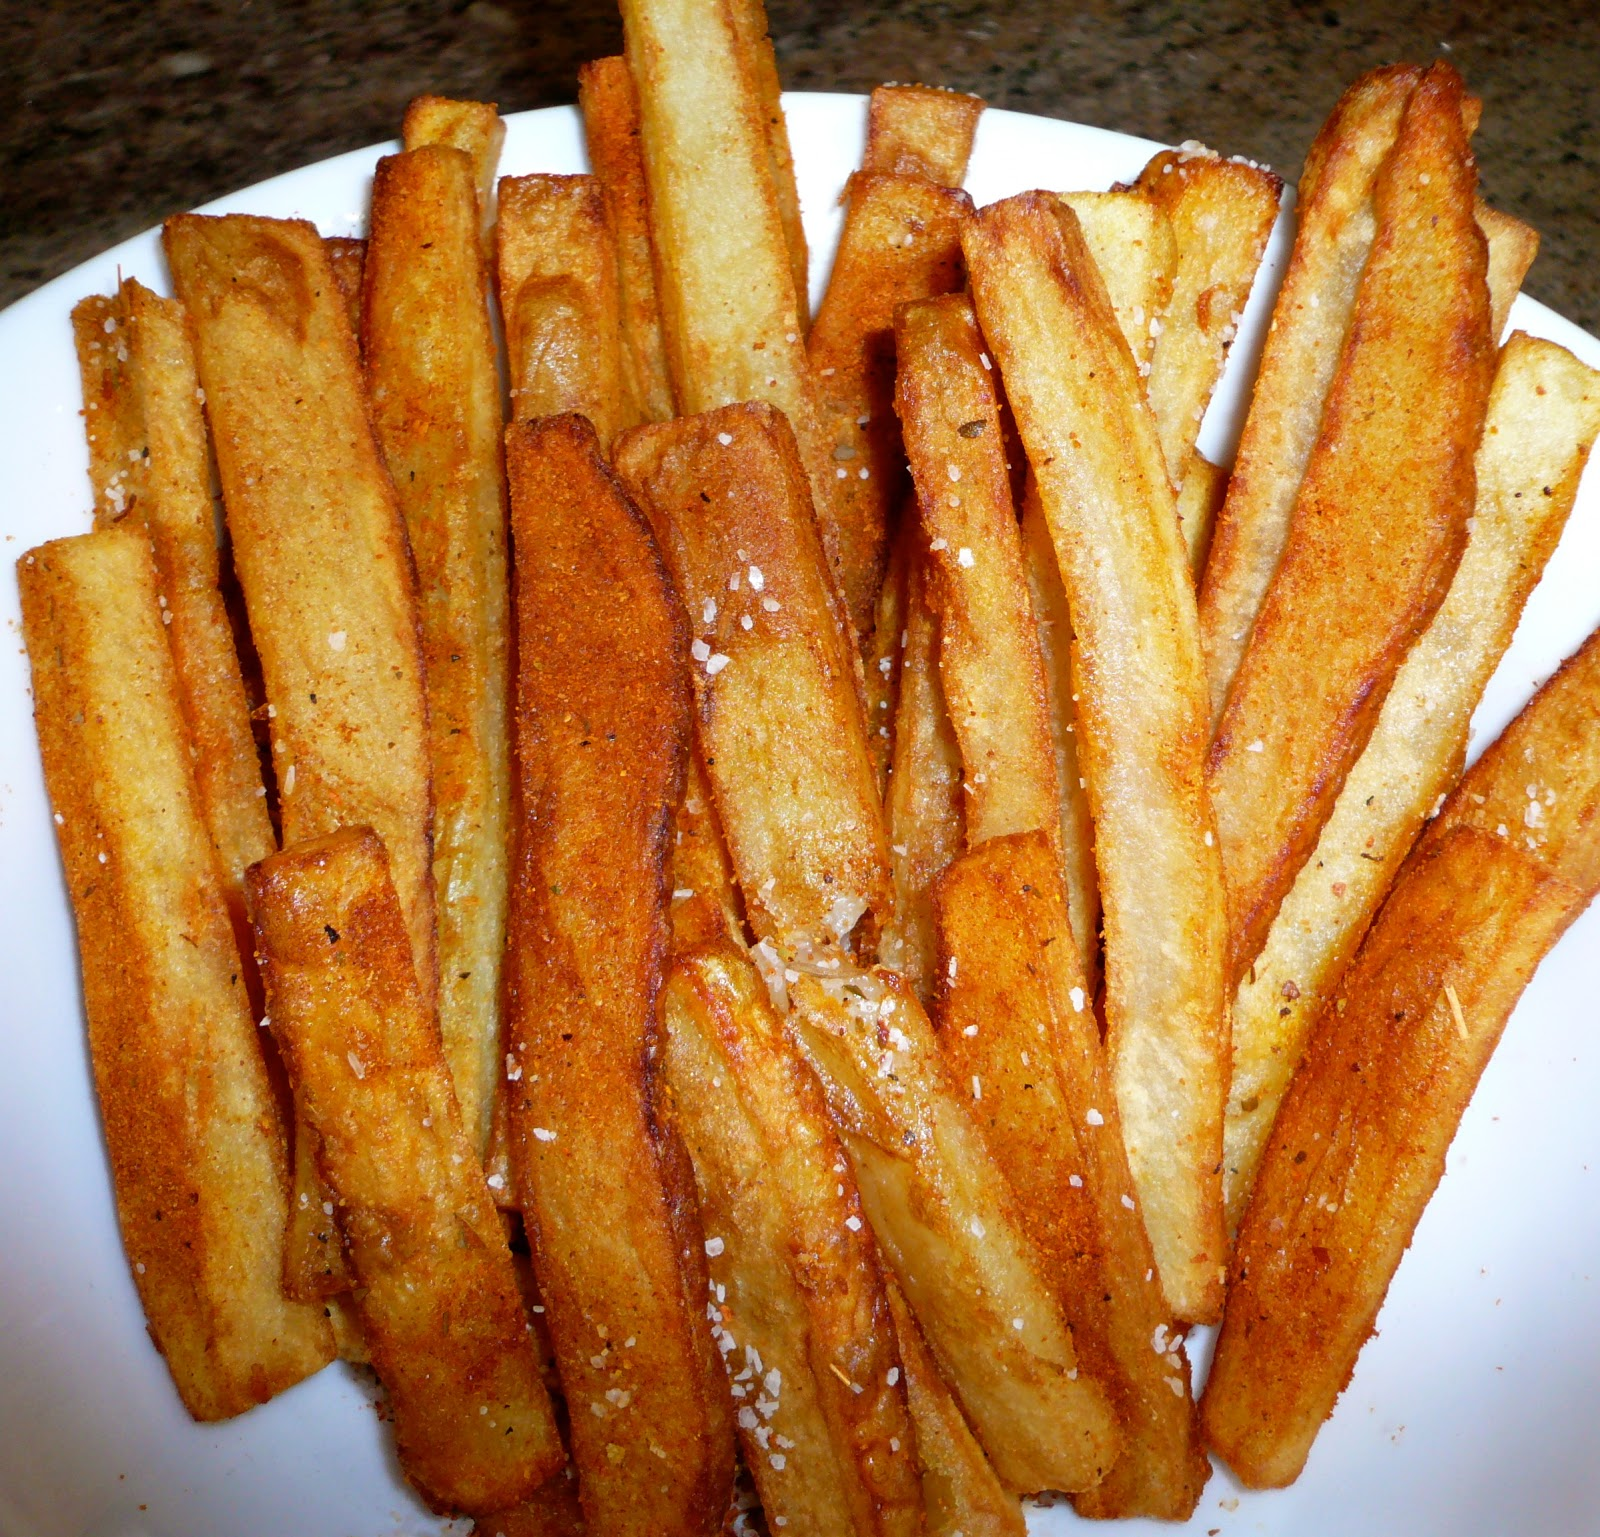 fries perfect french fries recipe yummly the secret to perfect ...